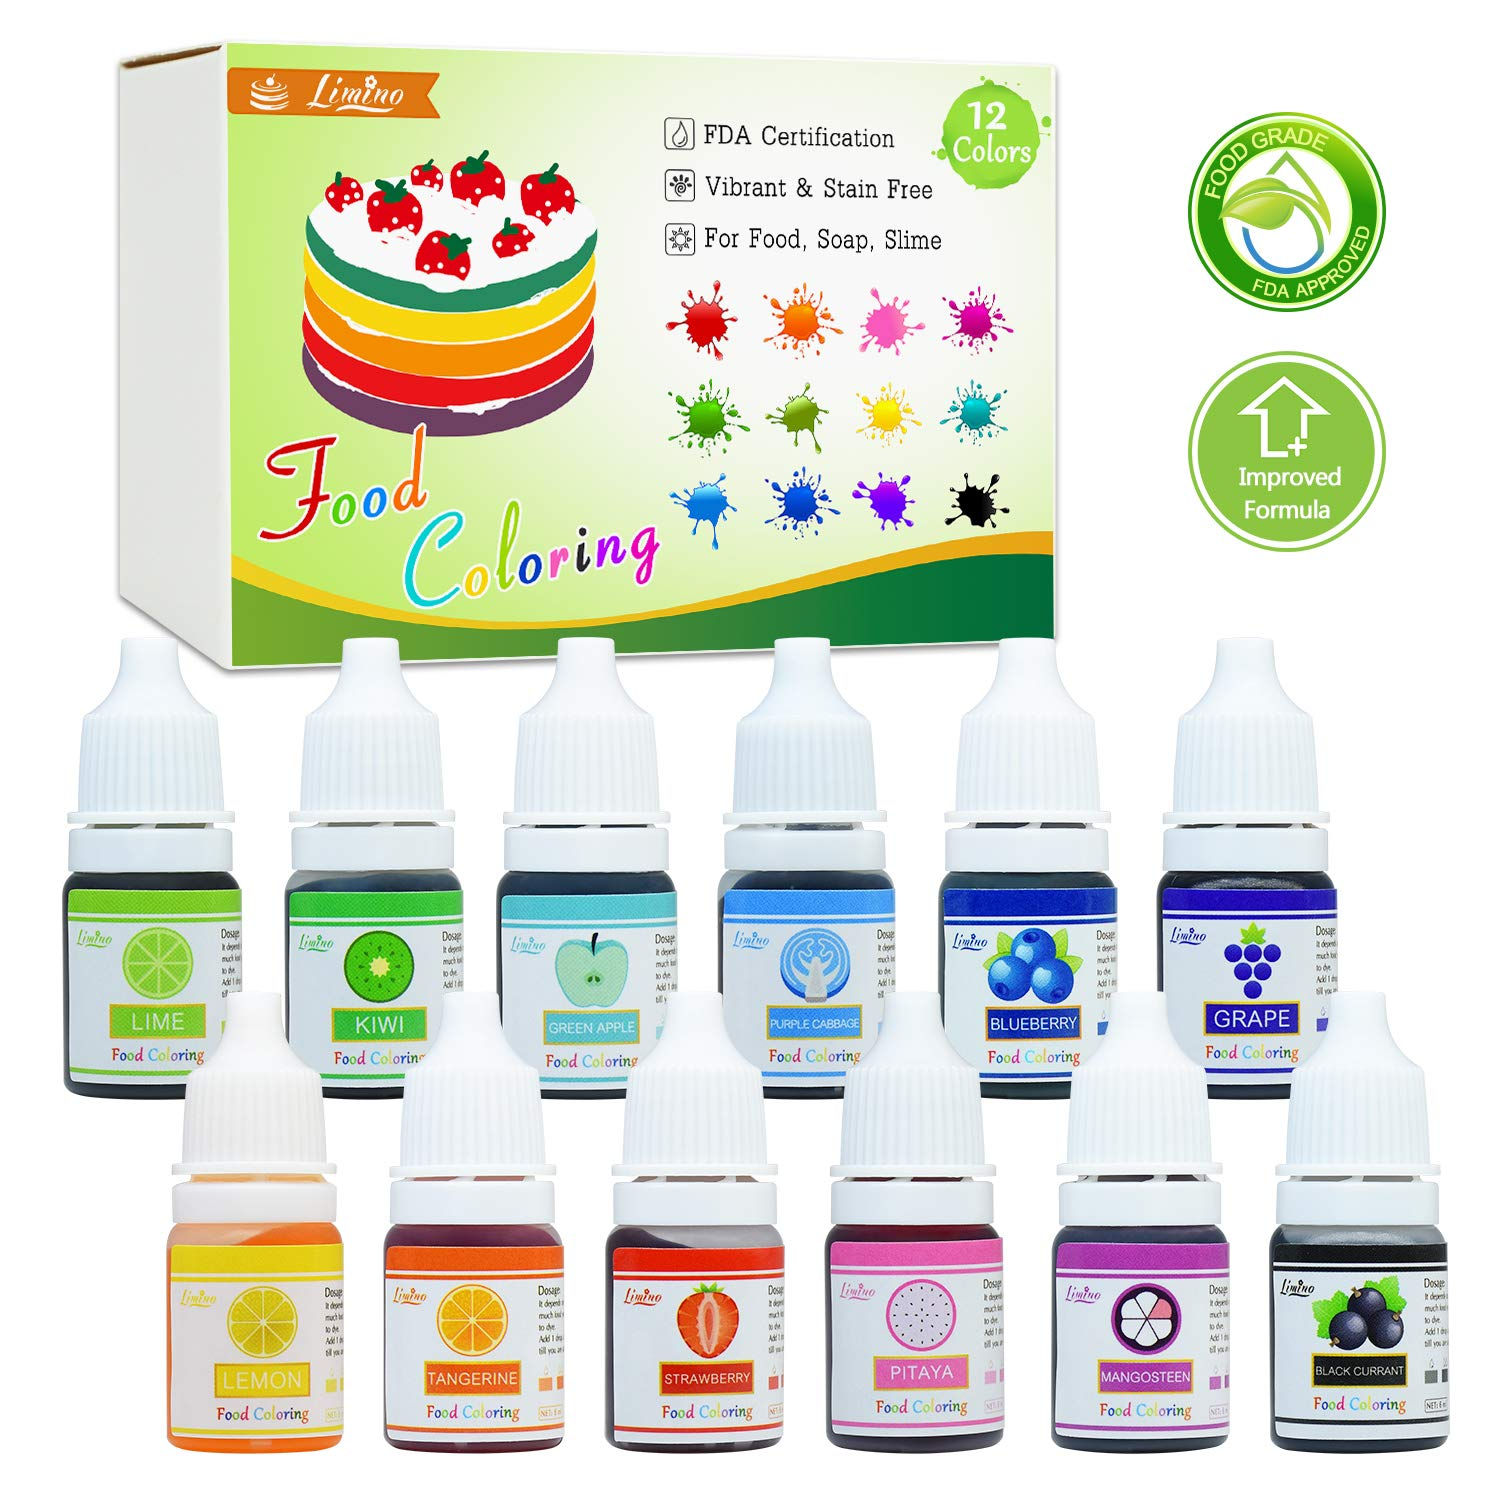 Food Coloring - 12 Color Bright Rainbow Cake Food Coloring Set for Baking,  Decorating, Icing and Cooking -...